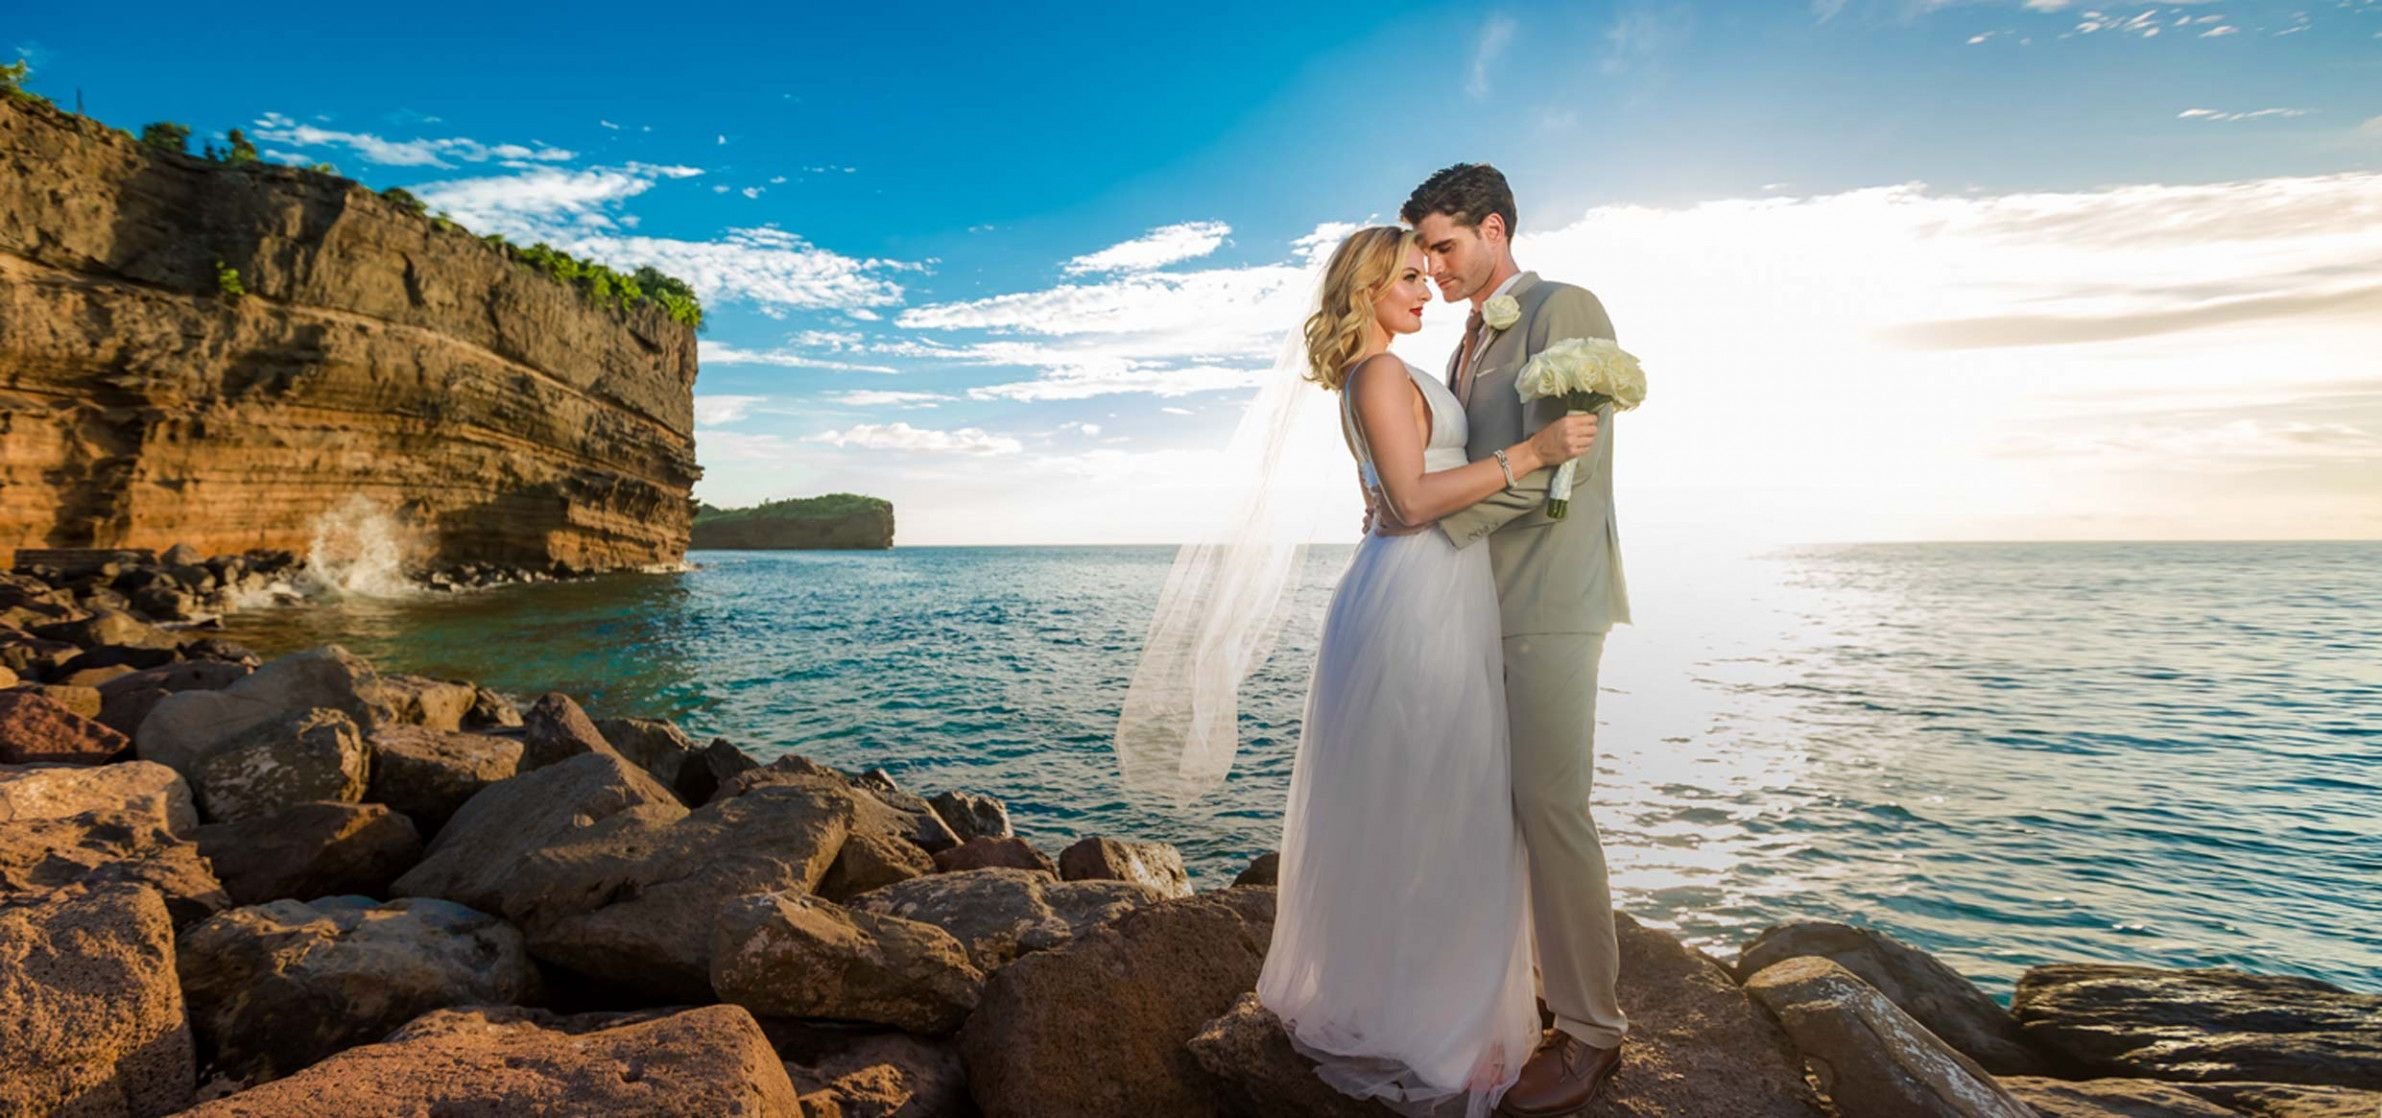 10 Signs You're In Love With Cheap All Inclusive Weddings